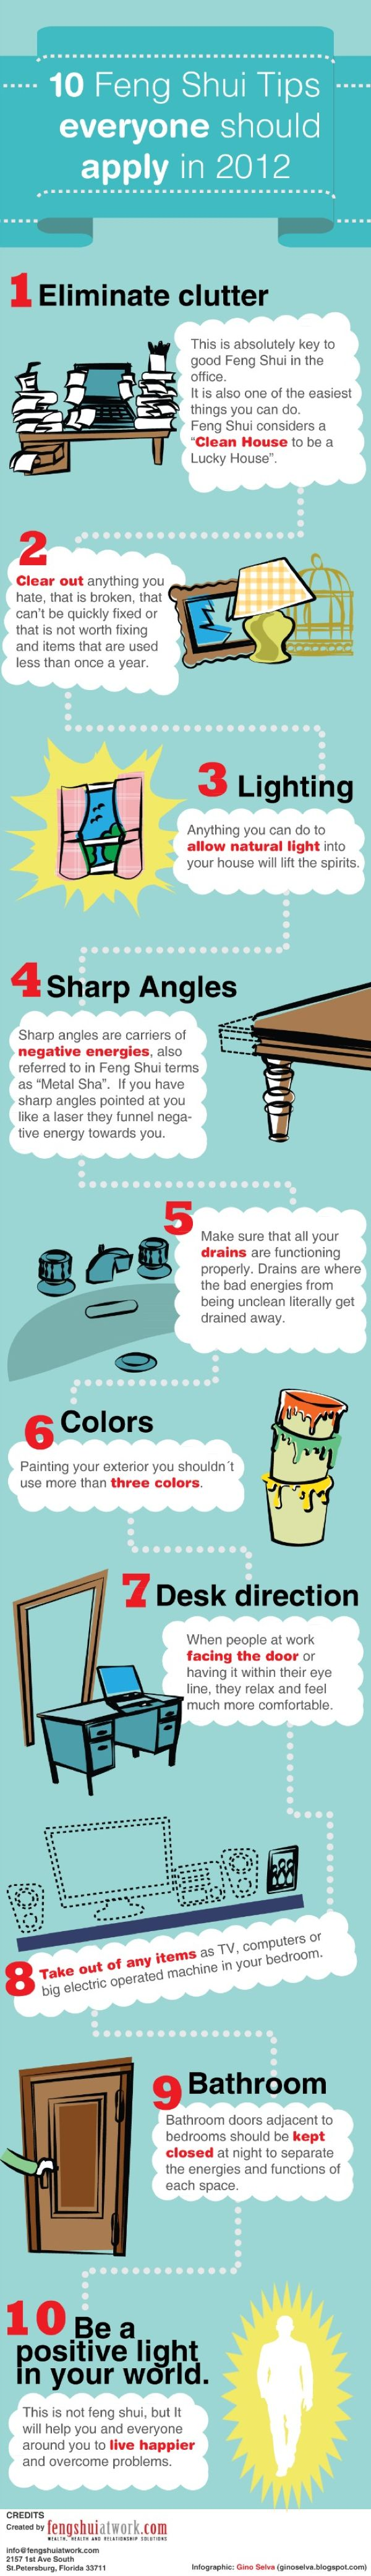 124 best feng shui images on pinterest feng shui health and reiki 10 feng shui tips everyone should apple in 2012 infographic